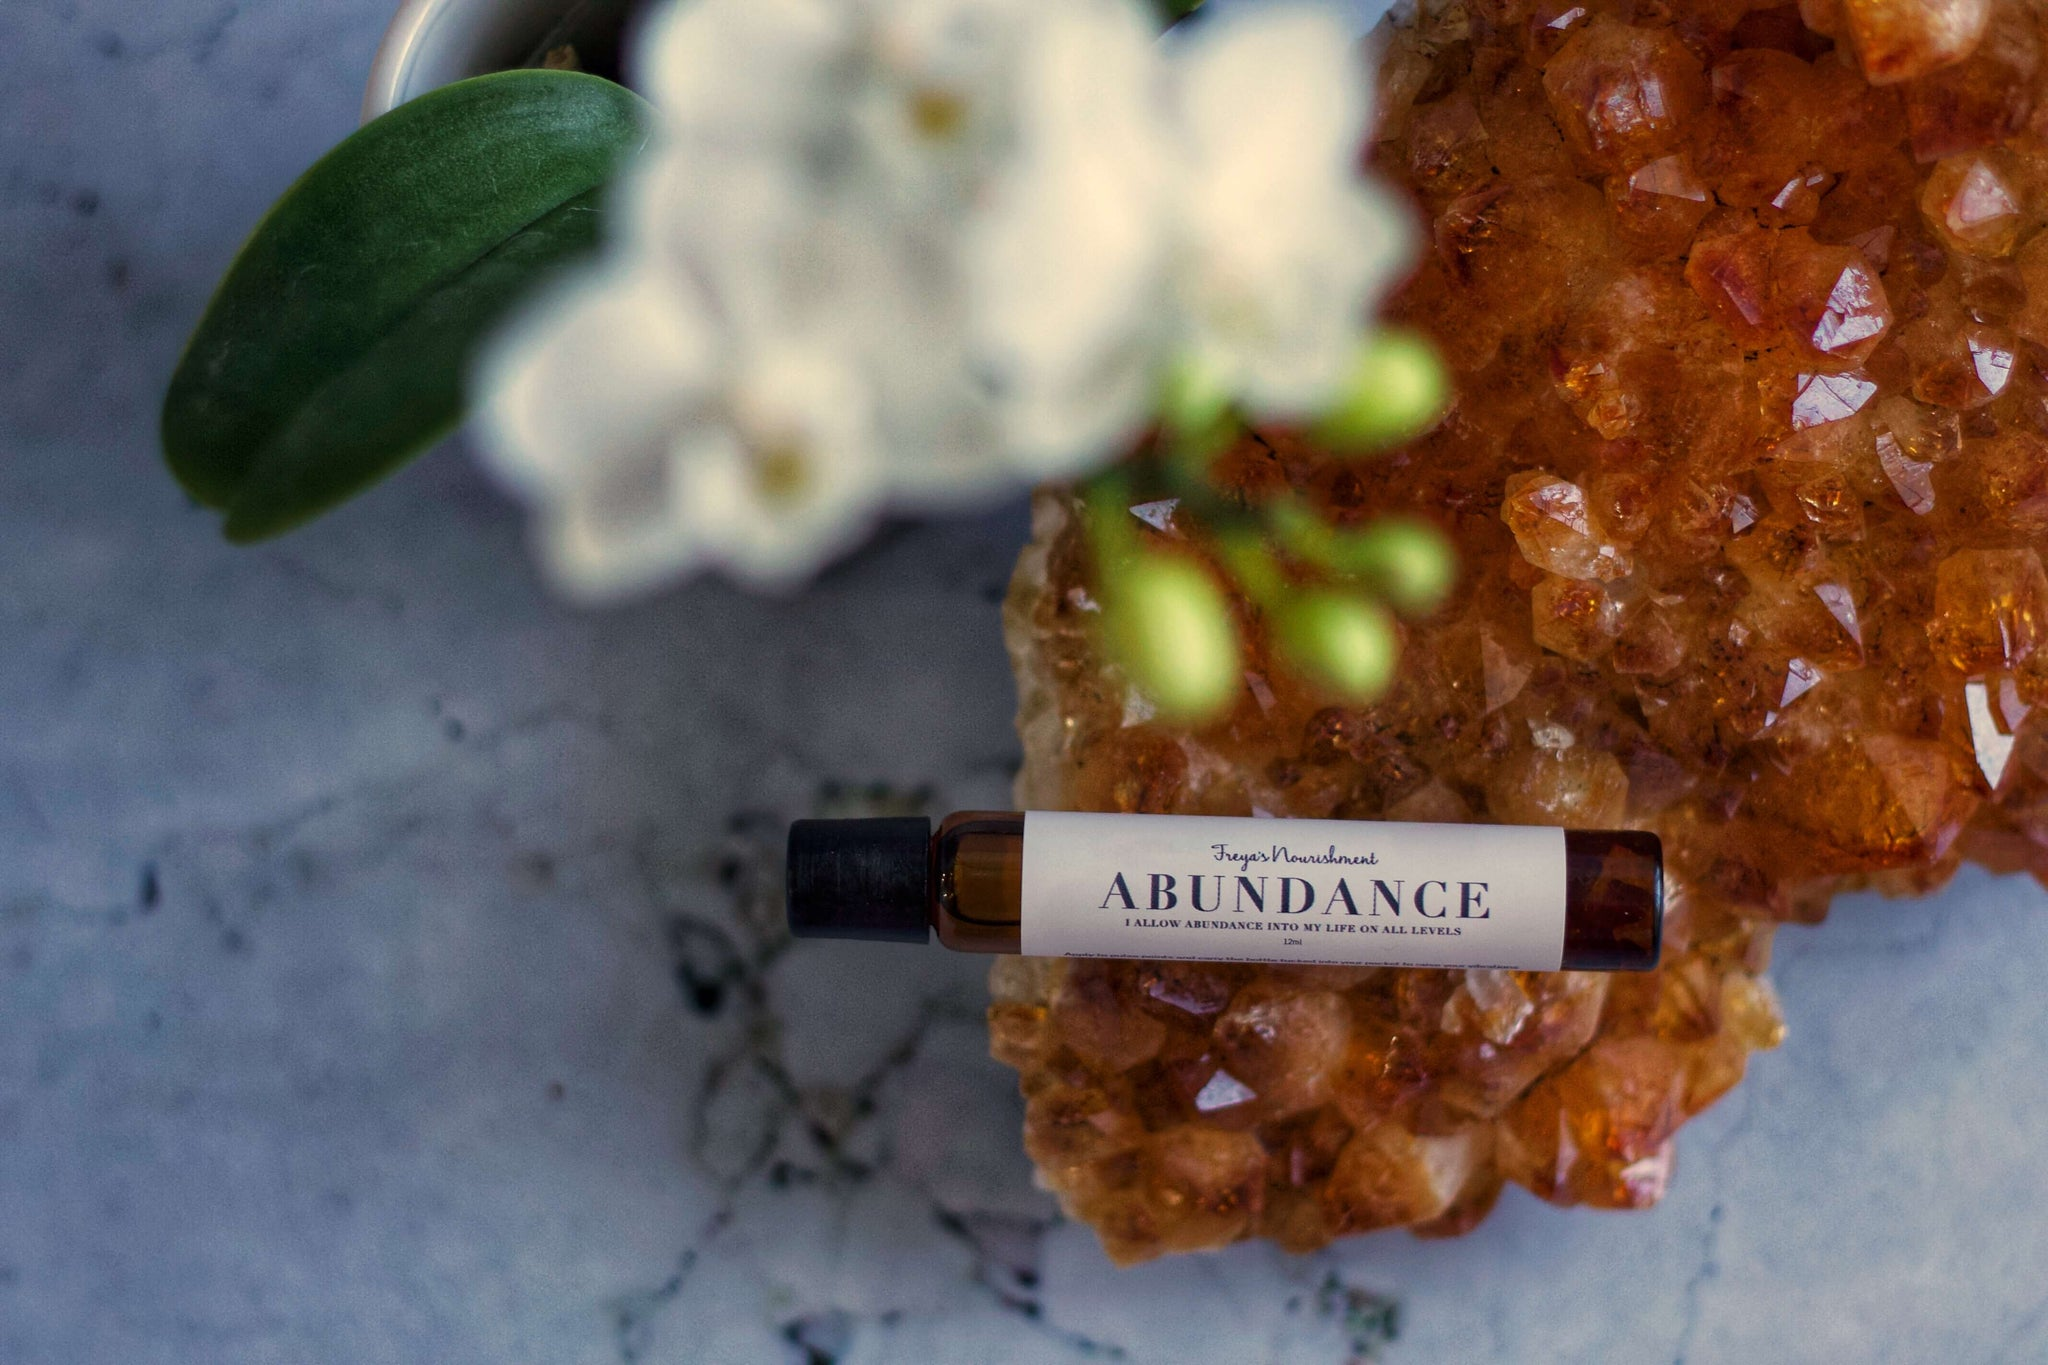 Crystal Infused Intention Oils - Freya's Nourishment